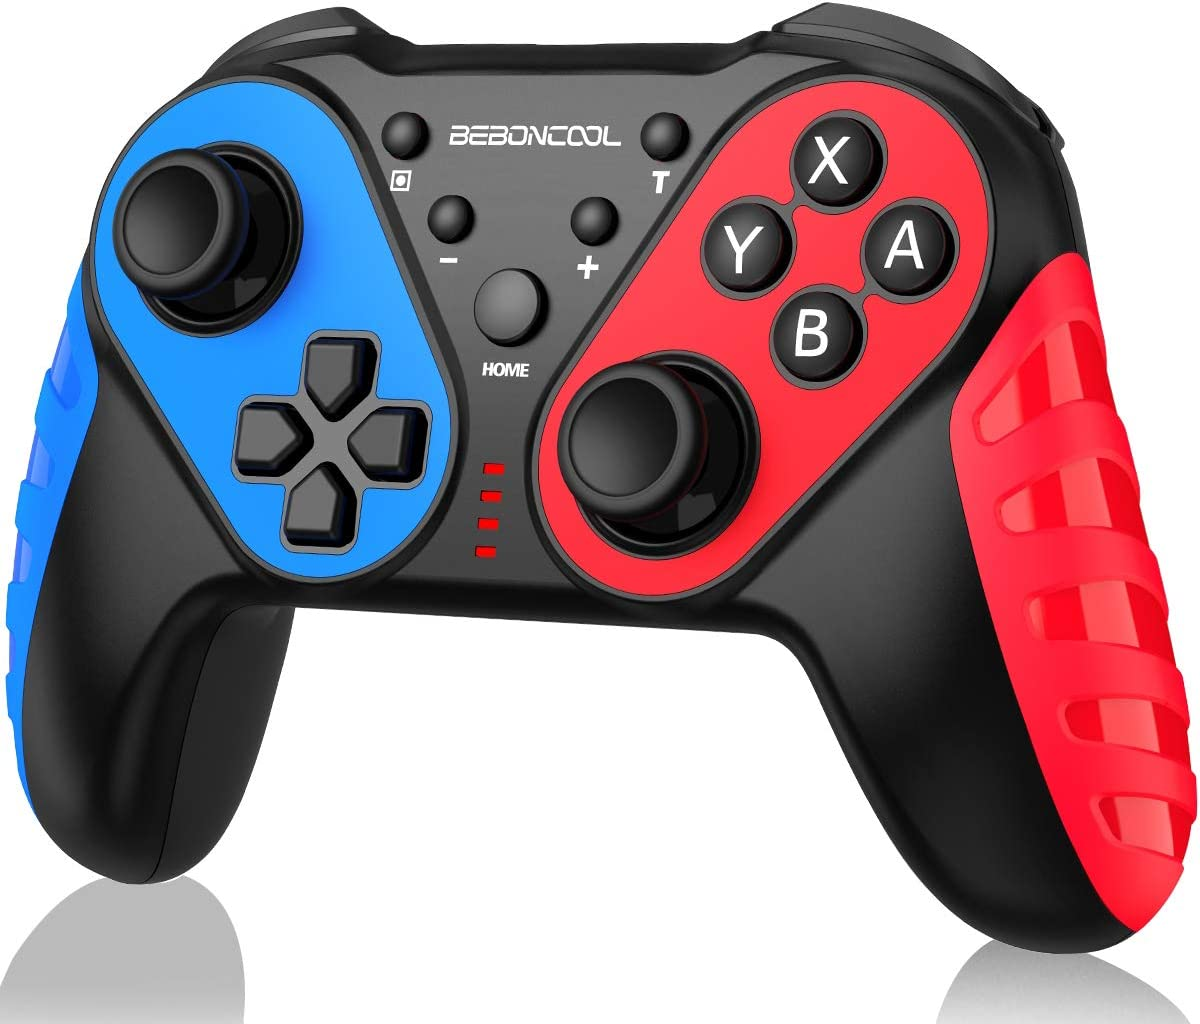 Switch Controller for Nintendo Switch, Replace for Nintendo Switch Controller, Switch Pro Controller Work with Nintendo Switch/Lite, BEBONCOOL Switch Controller with Turbo, Vibration, Motion Functions: Electronics